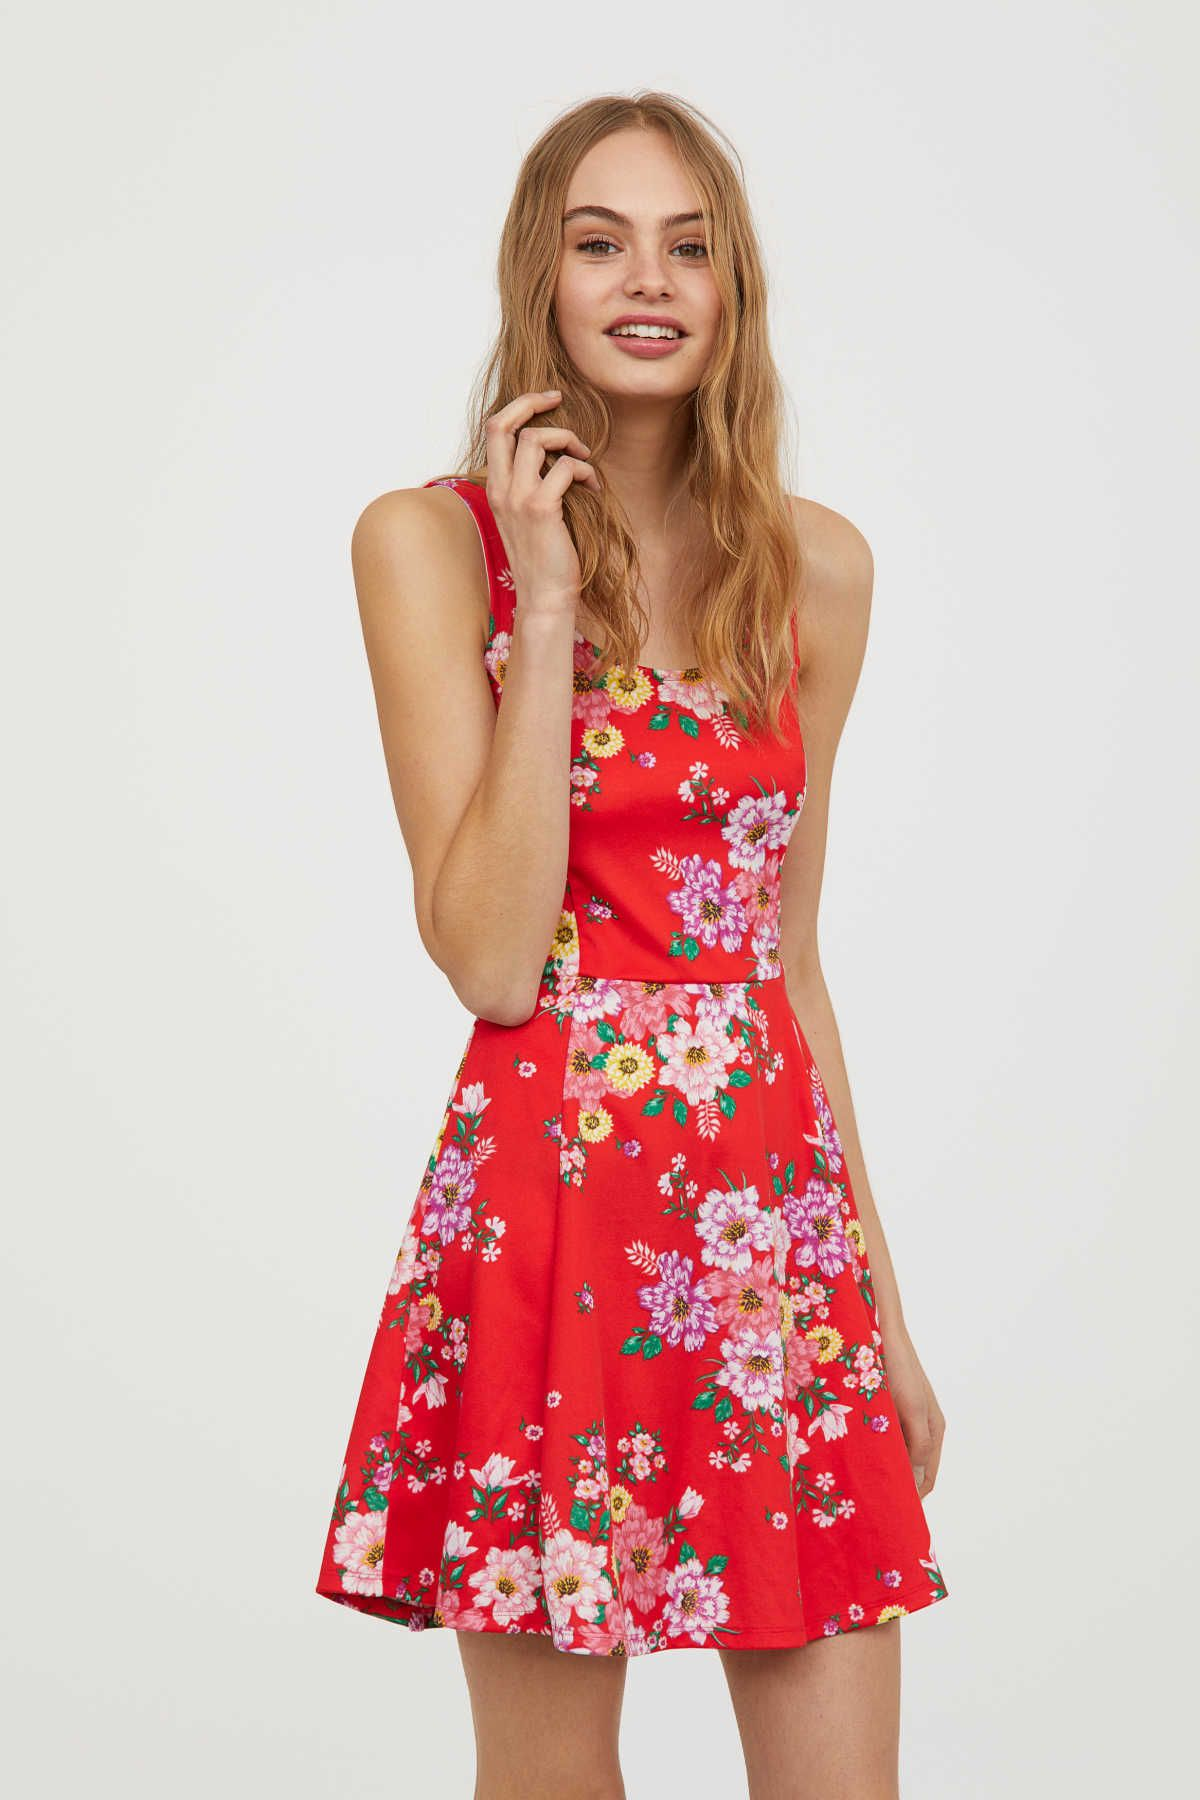 835276b4058 Jersey Dress | Bright red/floral | WOMEN | H&M US | Fashion and ...